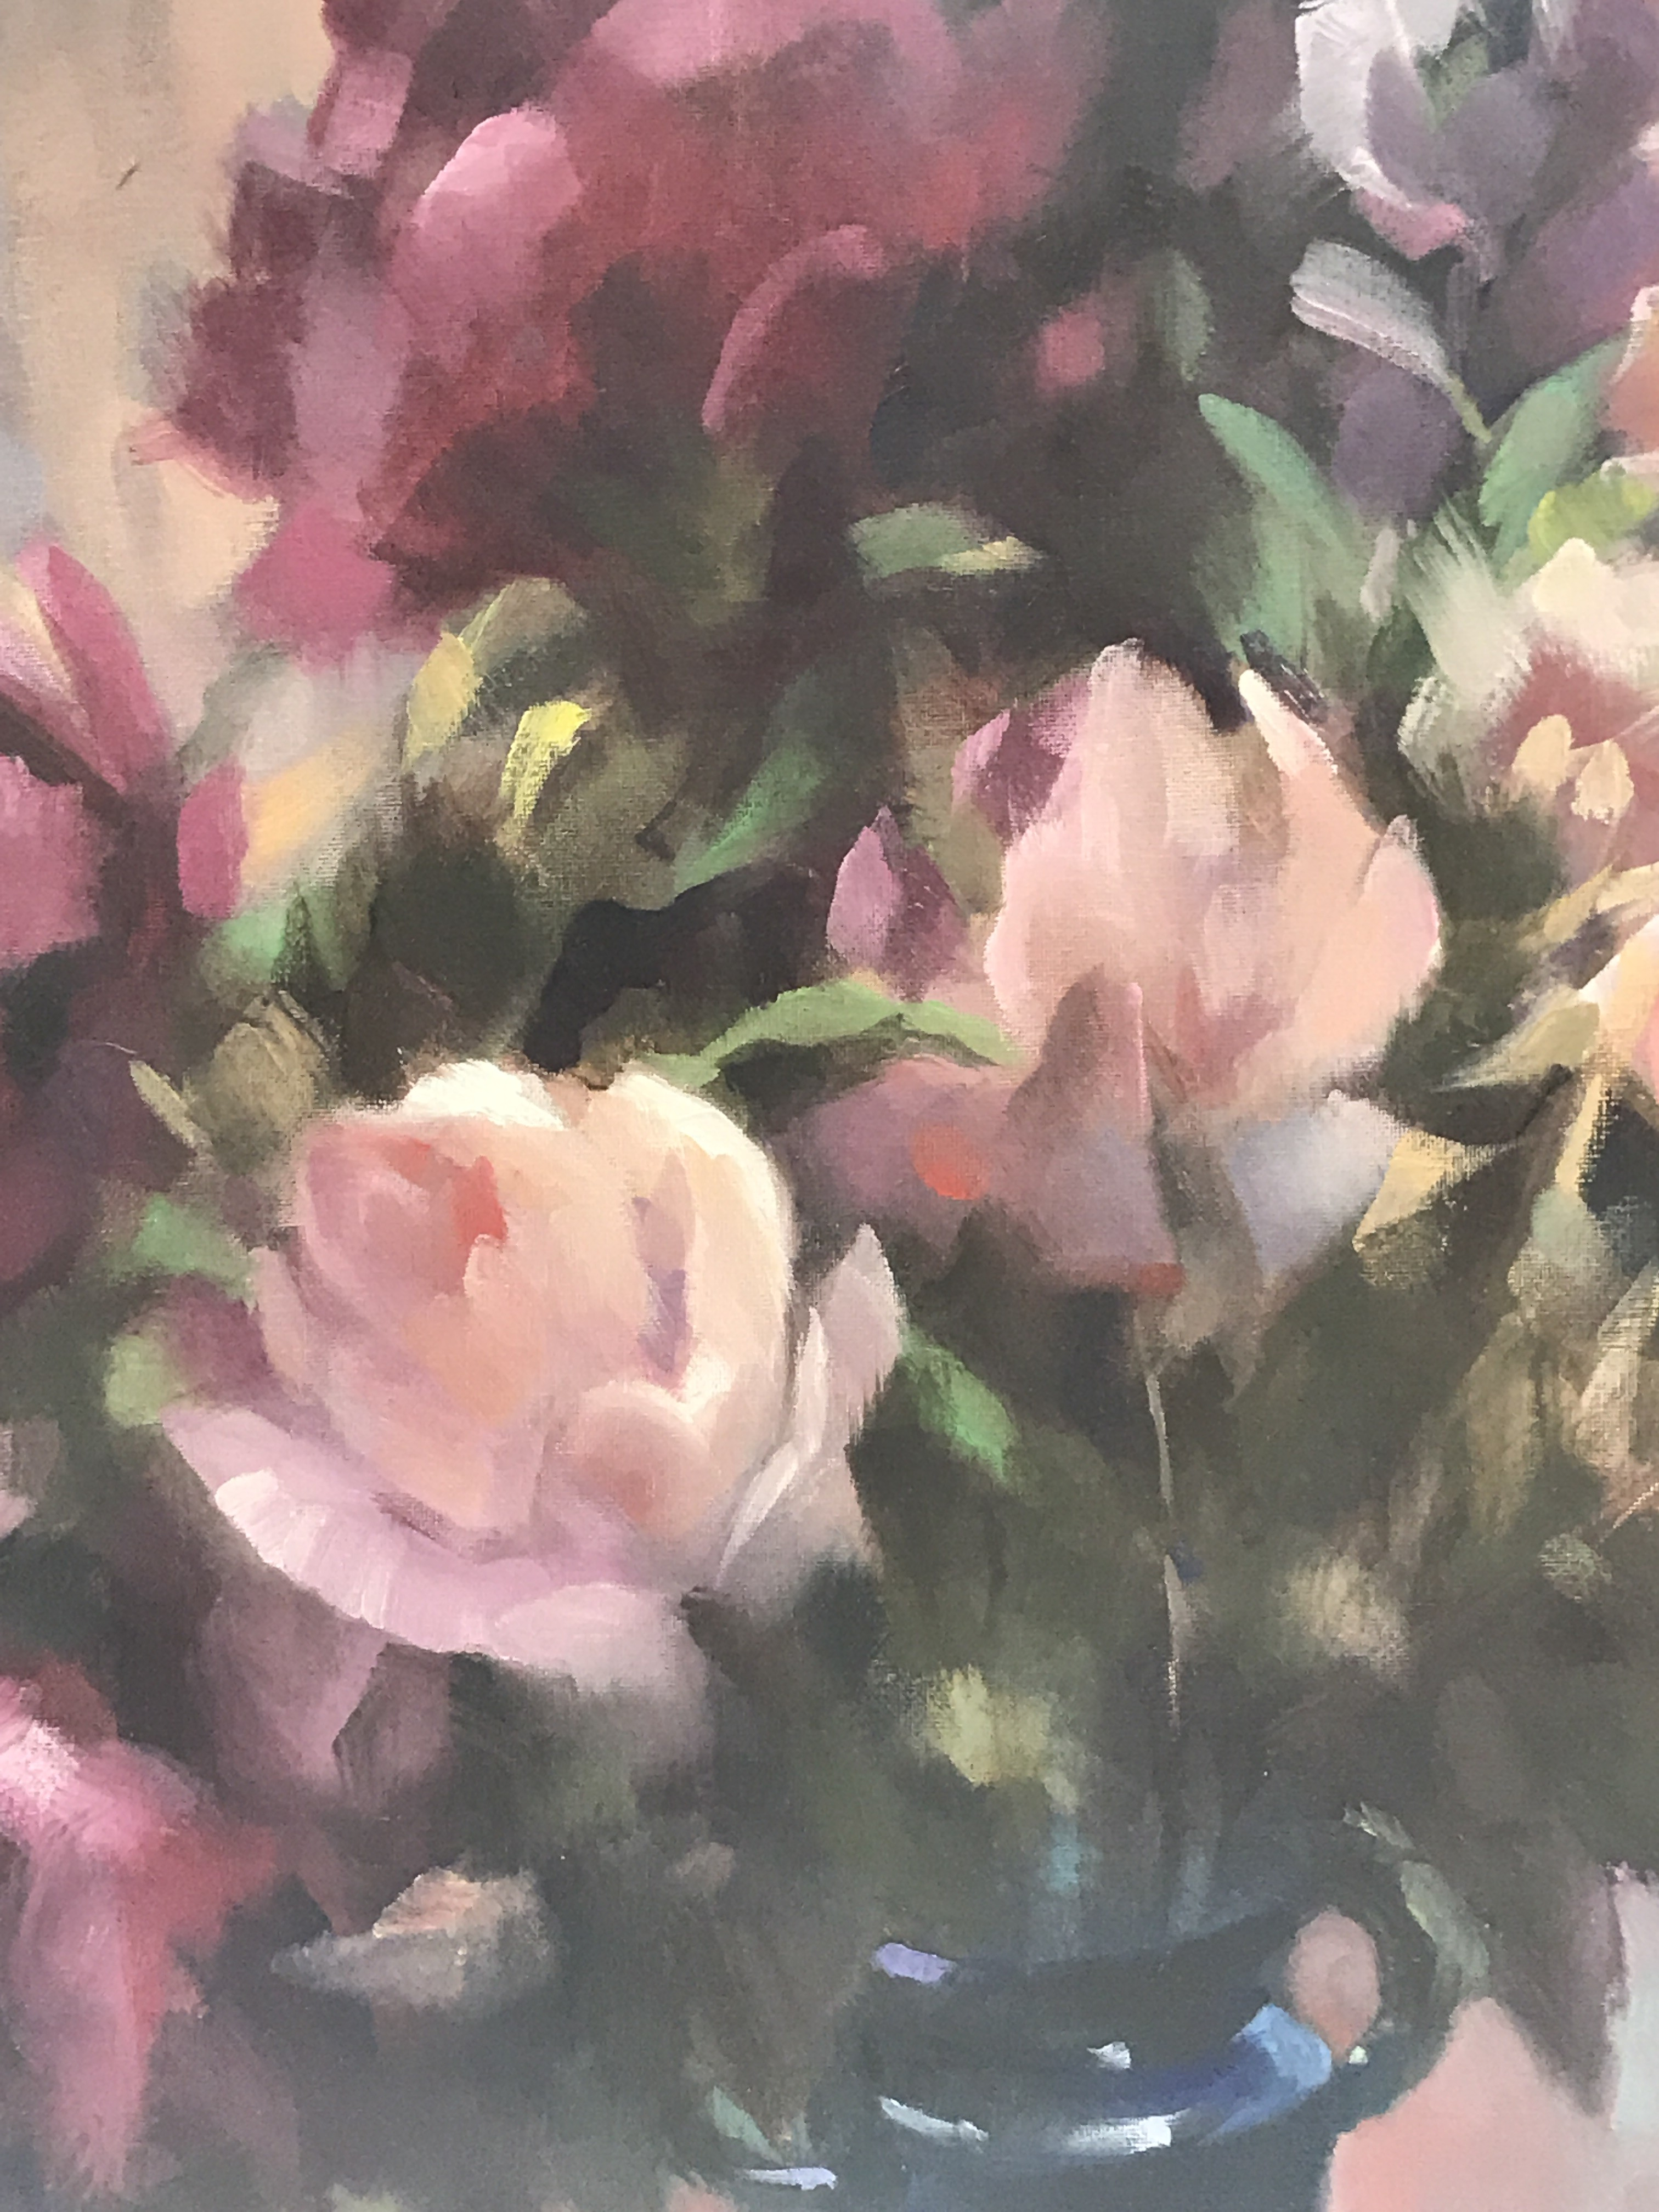 Rose Light is an original contemporary oil painting. Trevor Waugh was born in 1952 and grew up in London.